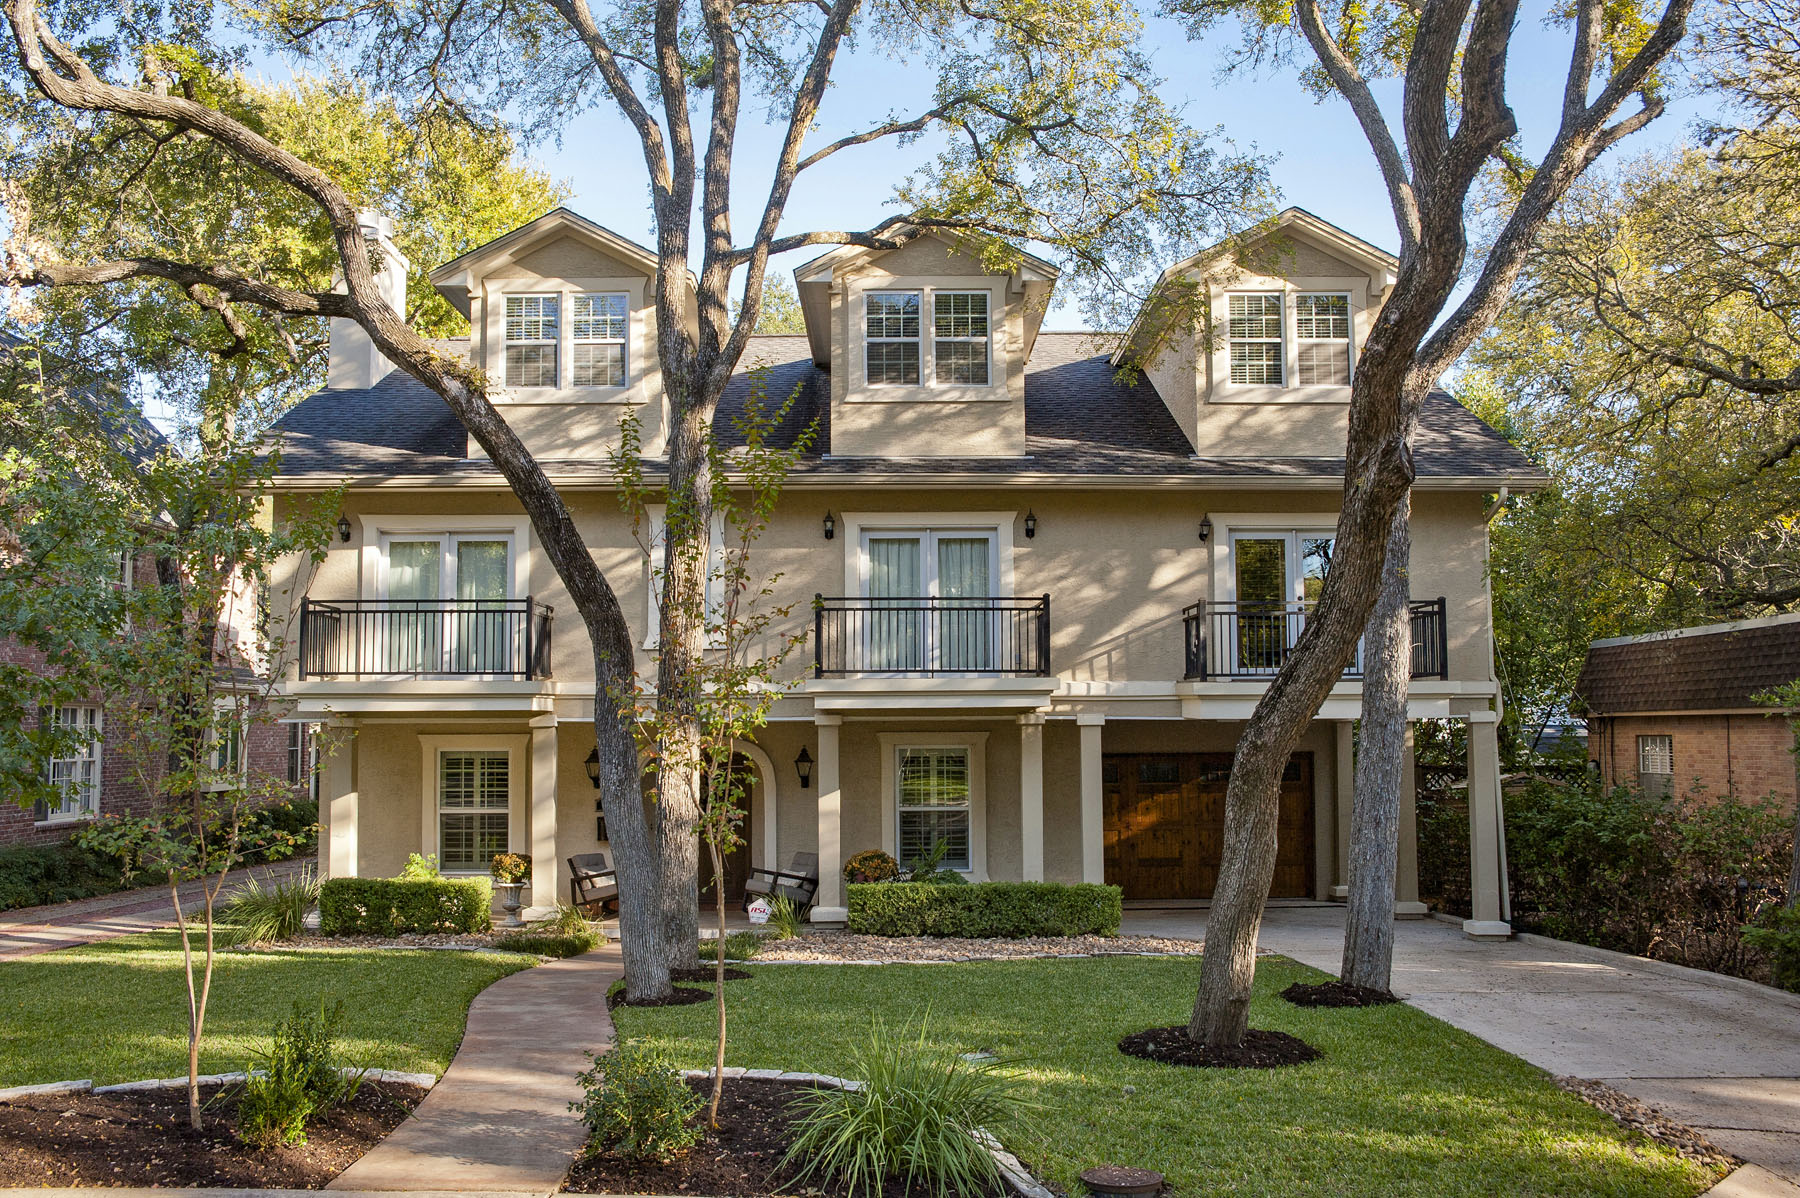 Single Family Home for Sale at Tarrytown Dream Home 1905 Mountain View Rd Austin, Texas 78703 United States